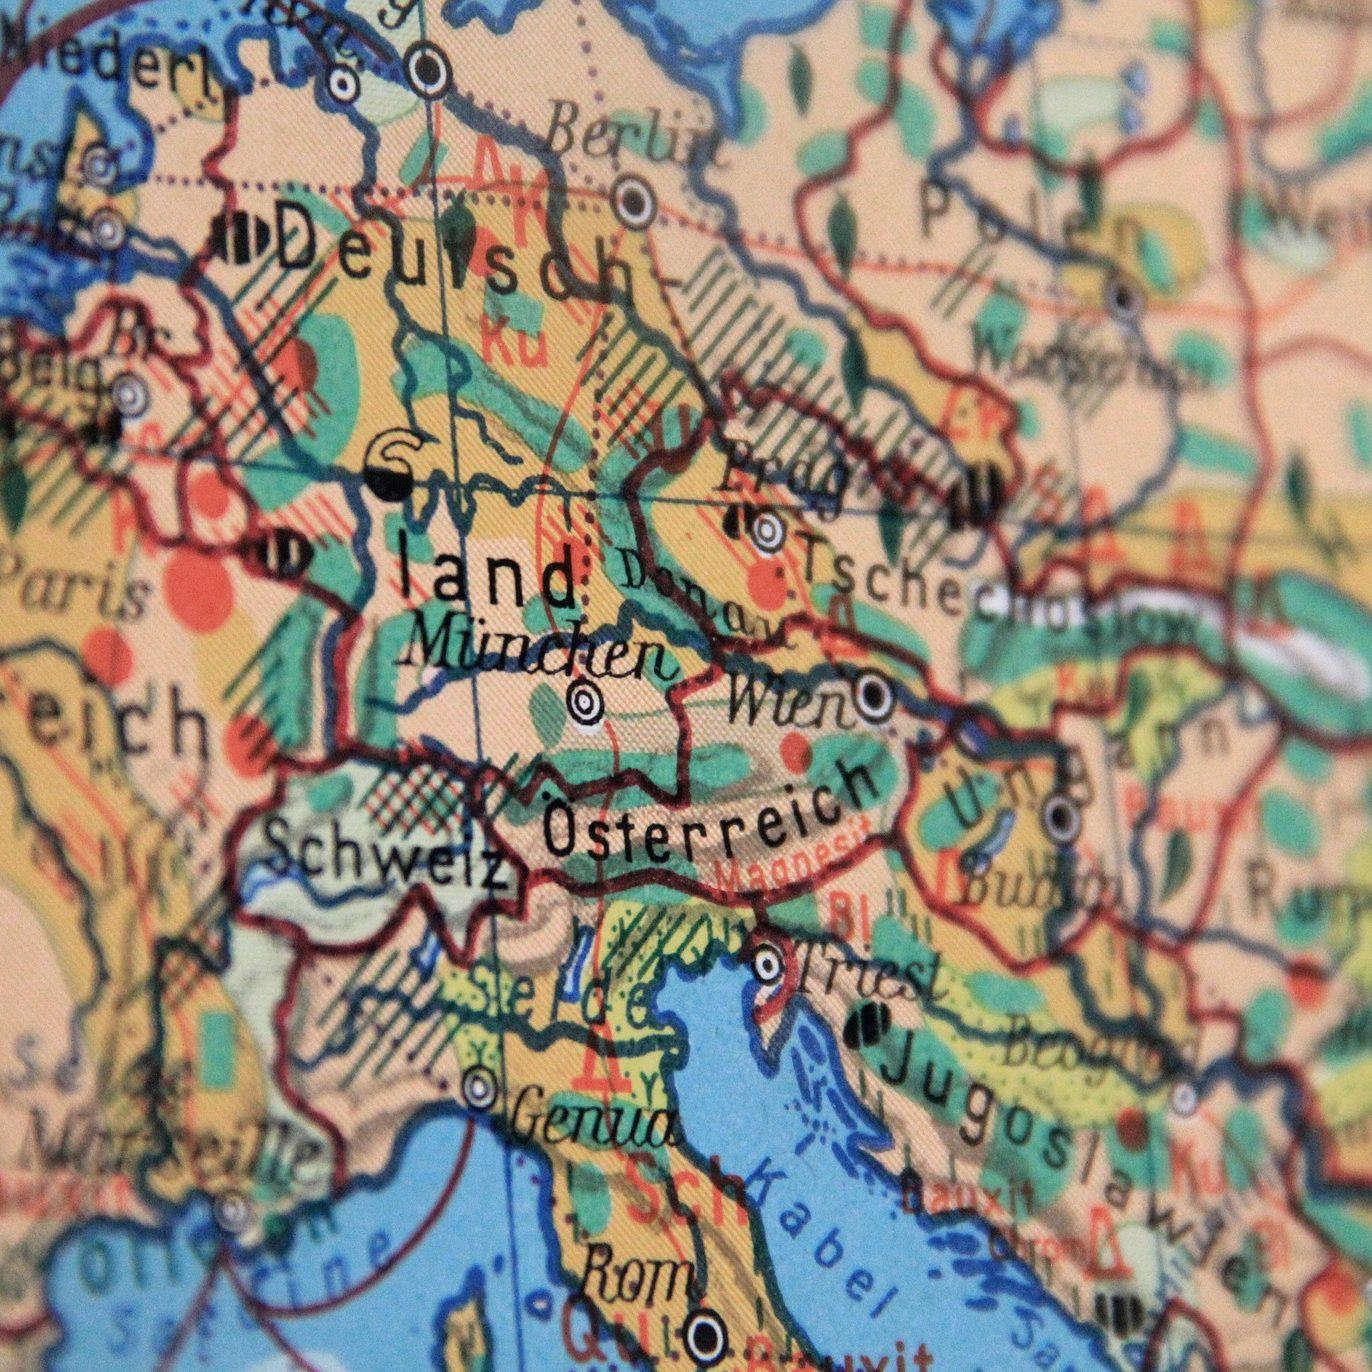 European Video Market Map Shows Growing Video Footprint Across the ...